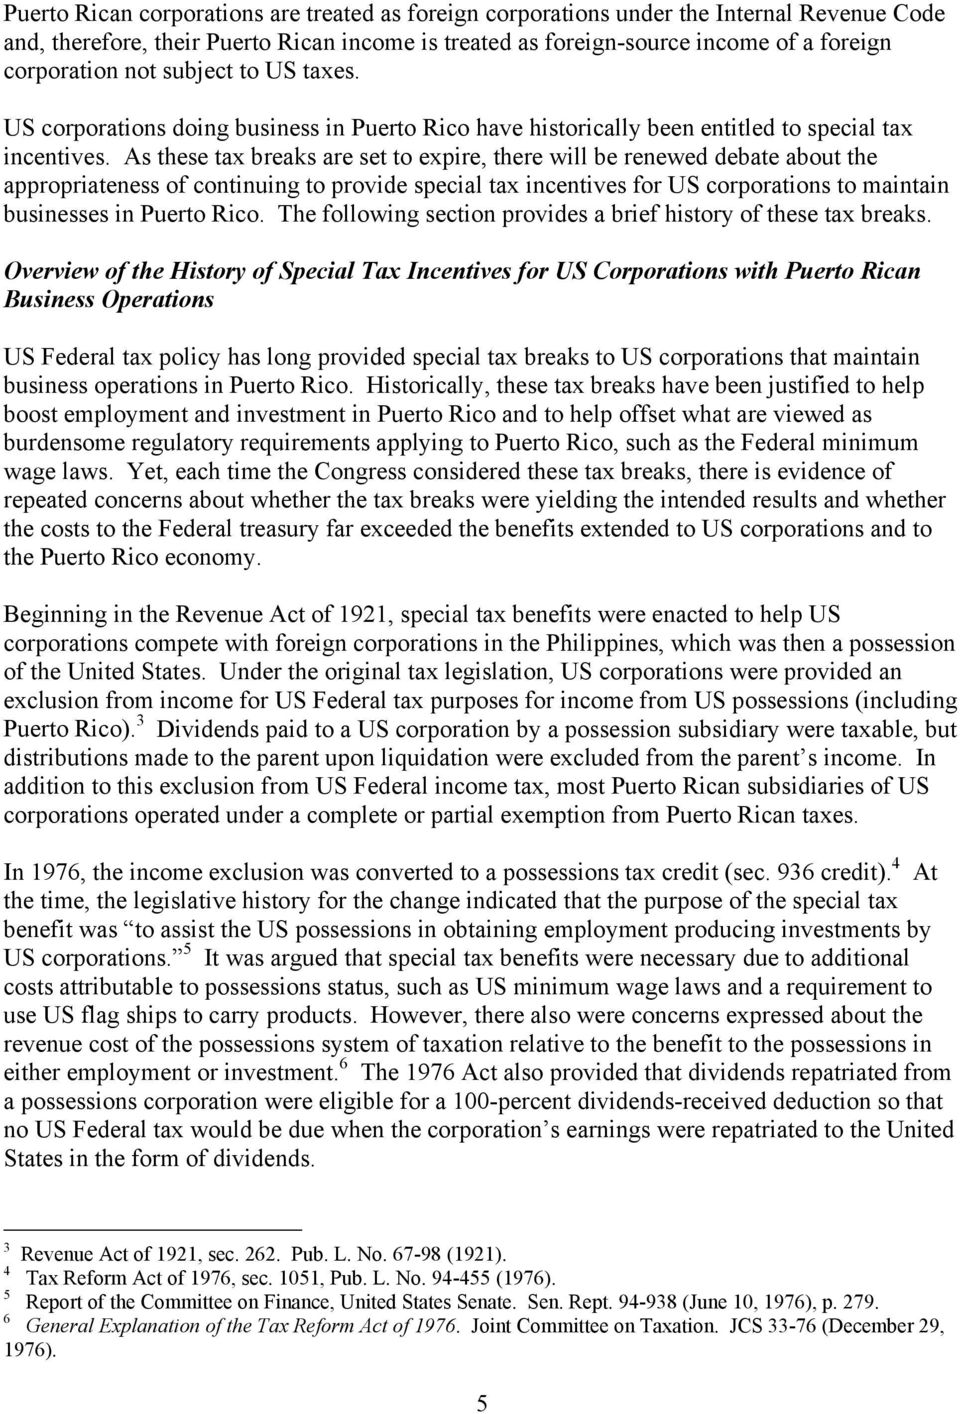 As these tax breaks are set to expire, there will be renewed debate about the appropriateness of continuing to provide special tax incentives for US corporations to maintain businesses in Puerto Rico.